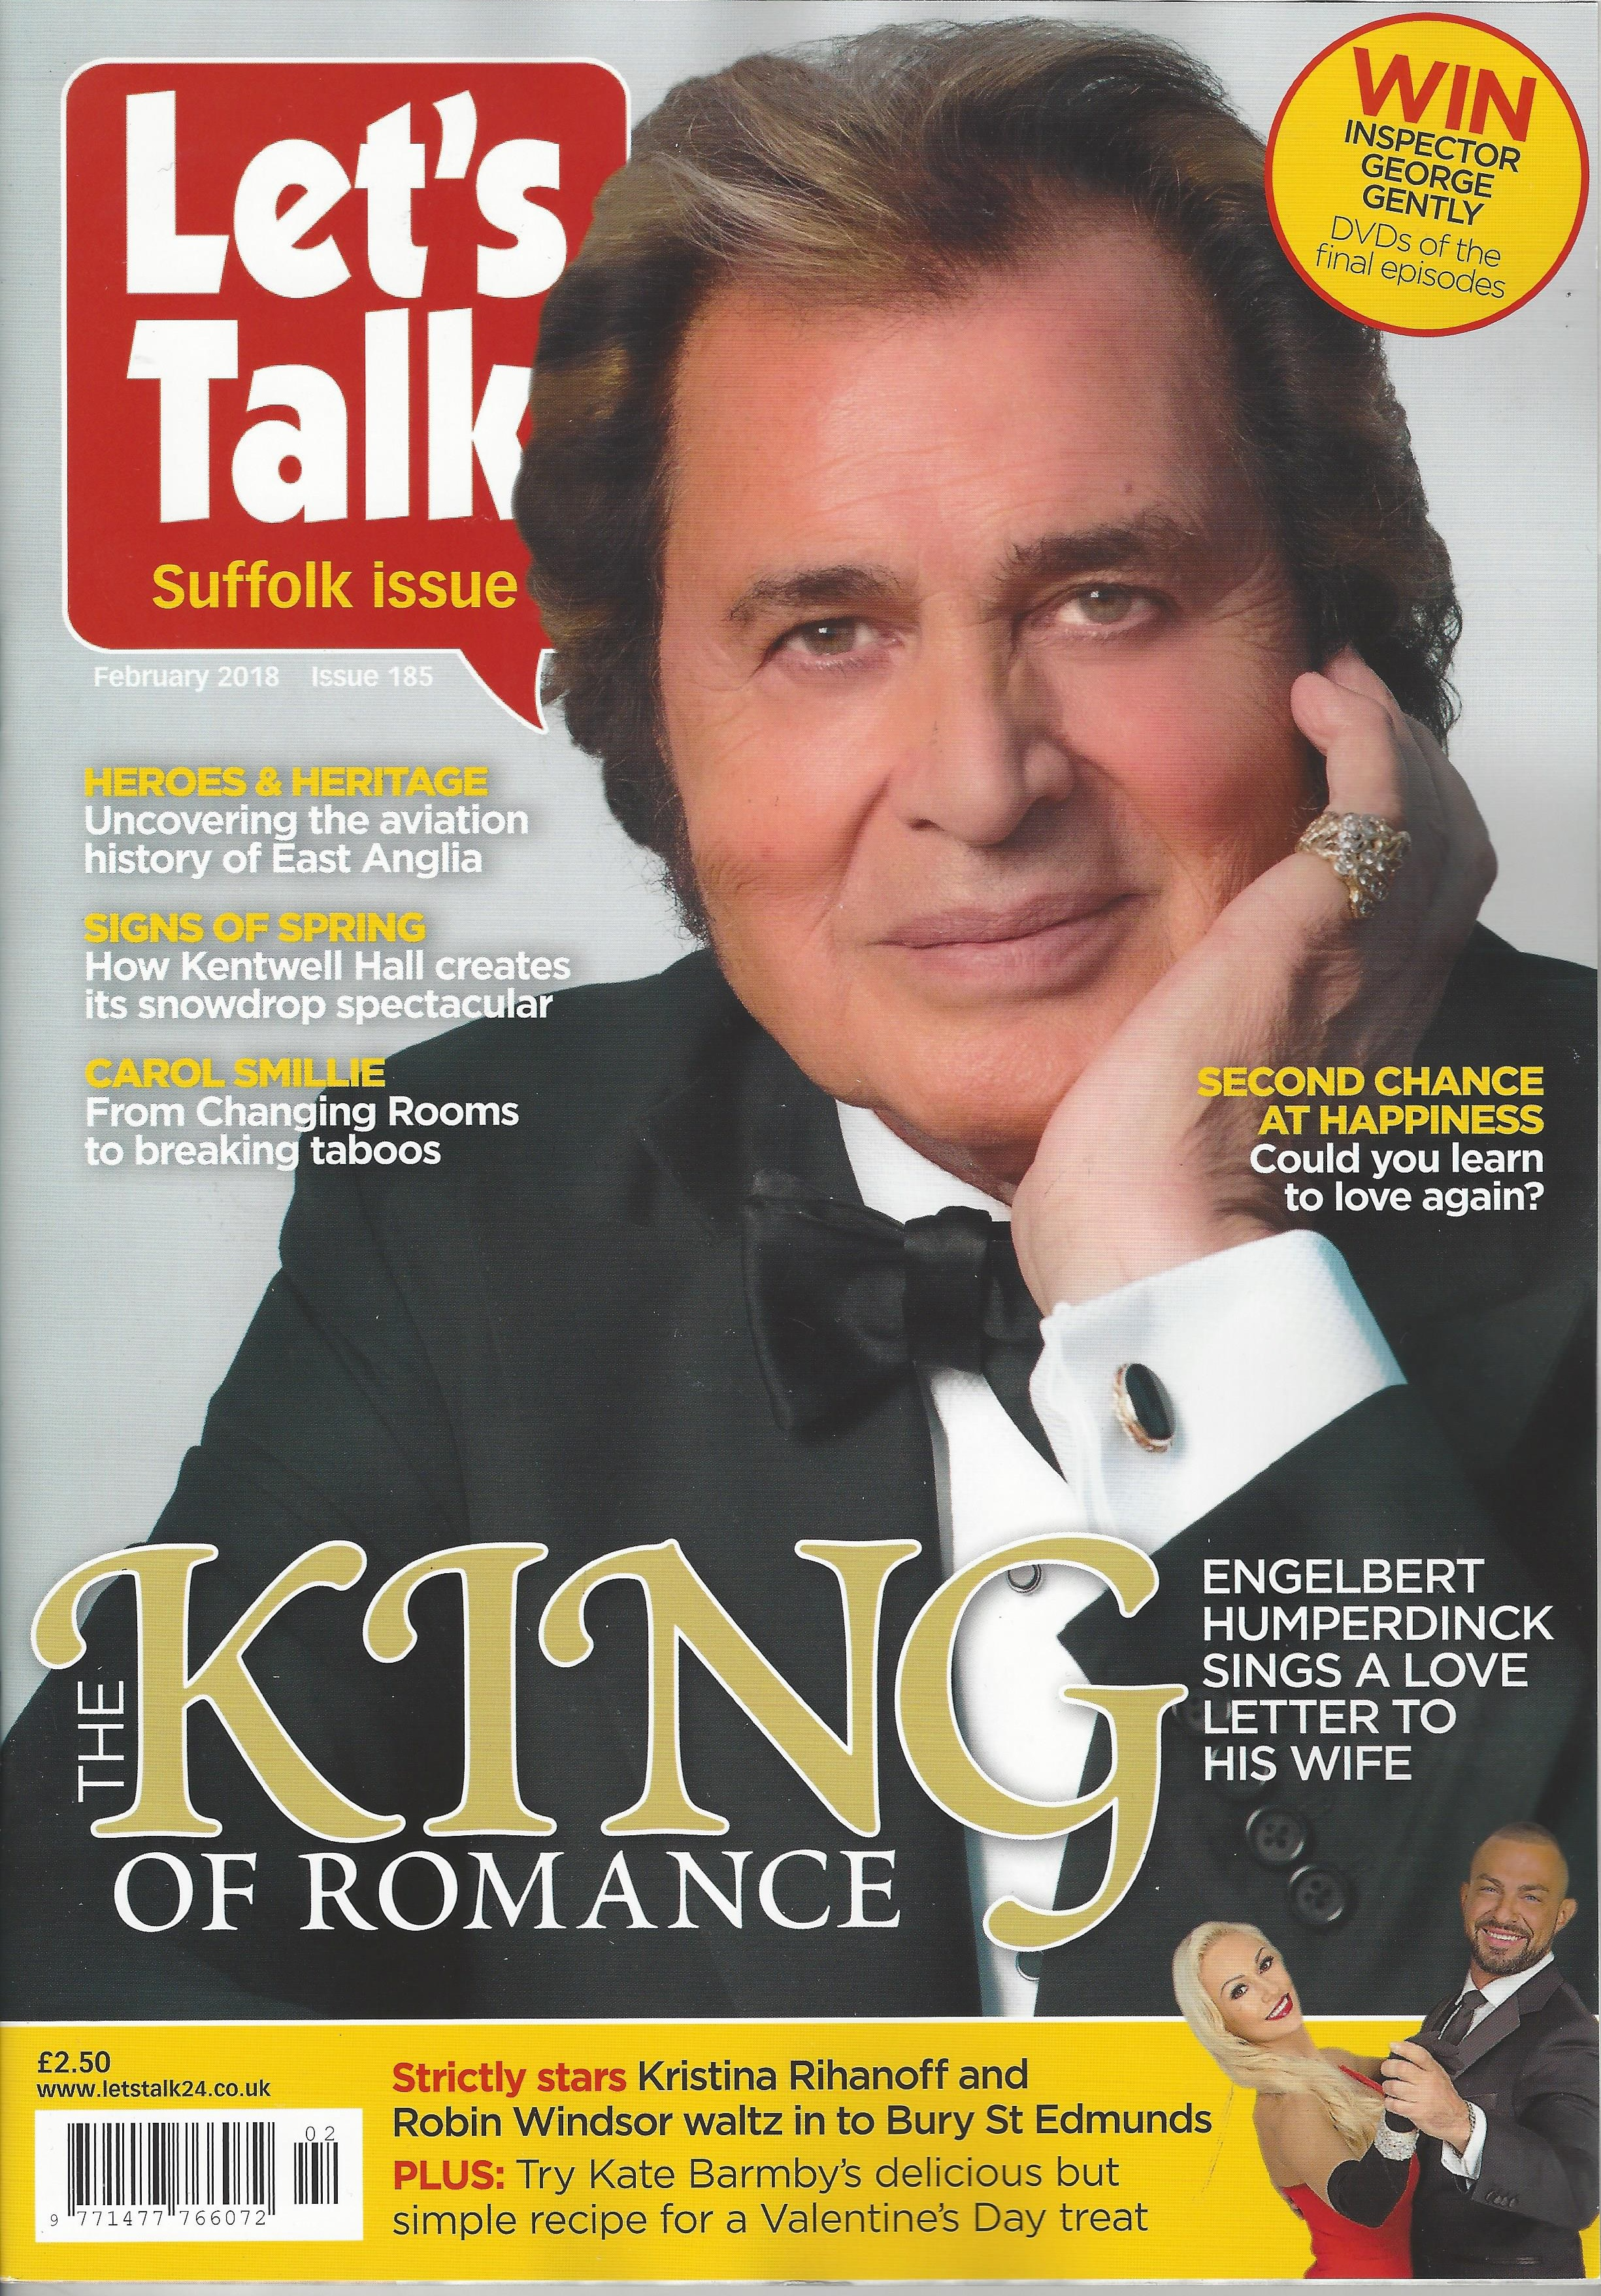 Let's Talk Magazine Features Engelbert Humperdinck on the Cover of February 2018 Issue